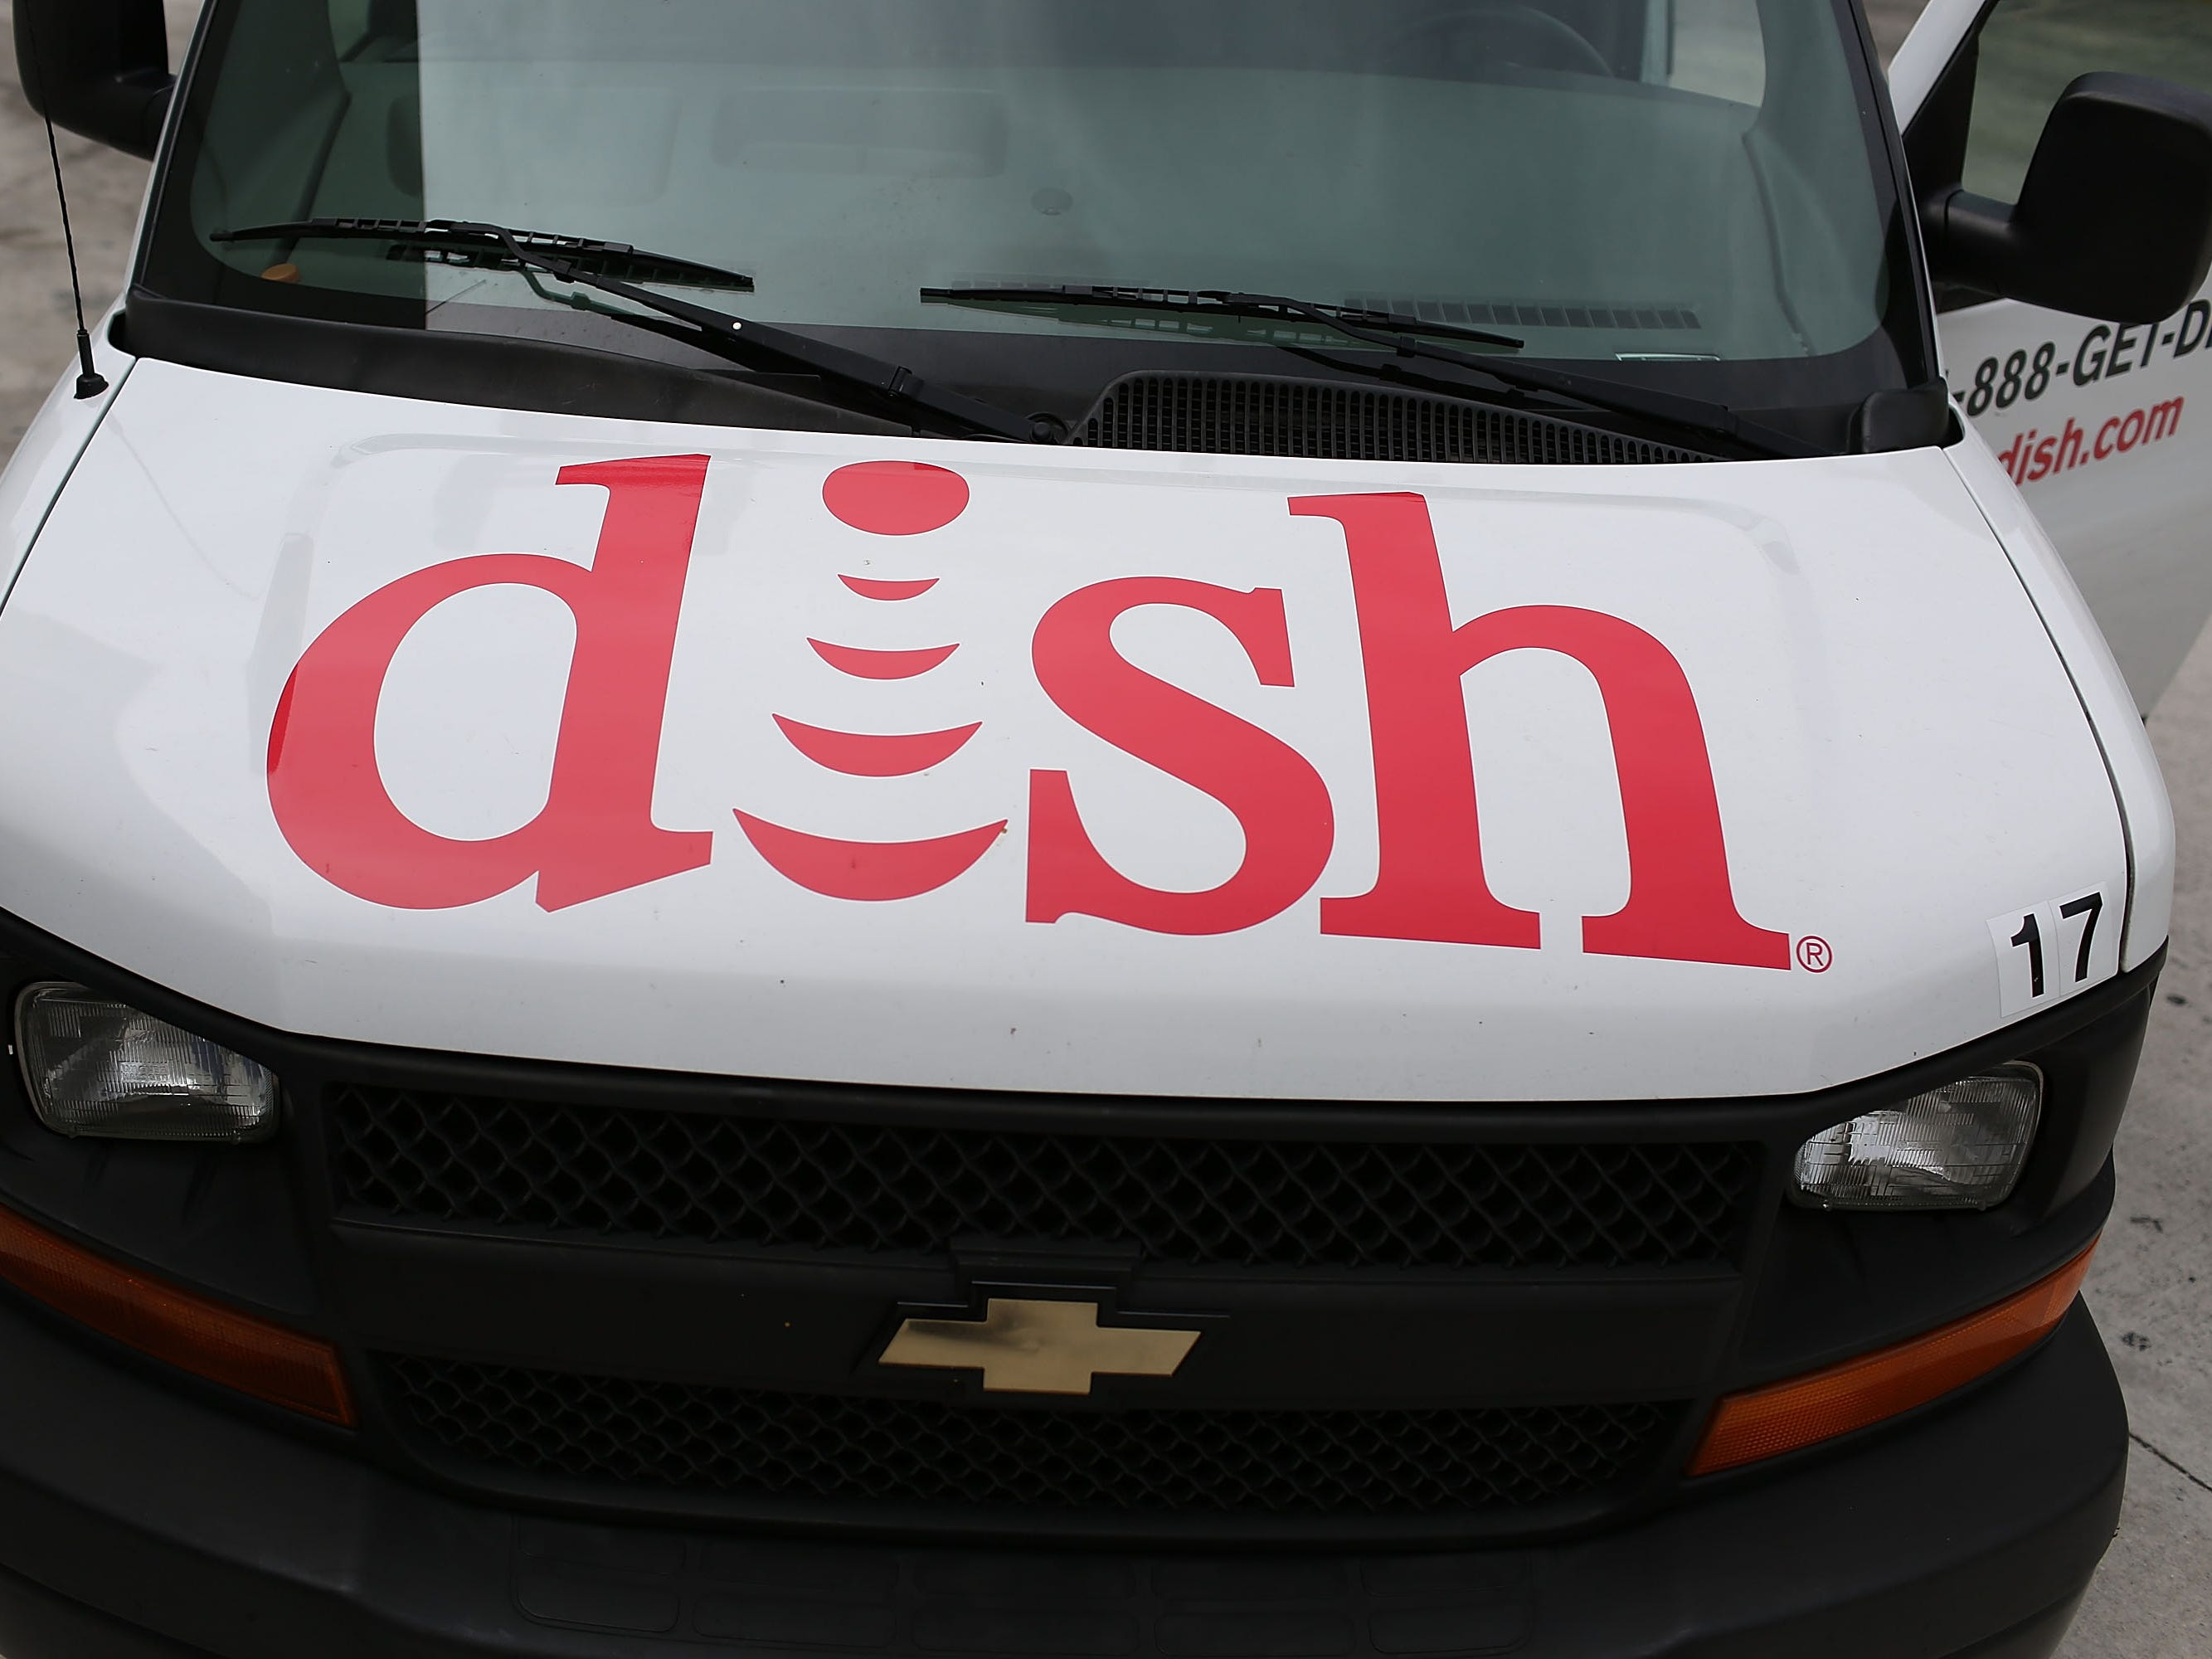 Dish Network, hiring 200. The satellite-television company is adding jobs from account managers to installers. More info: careers.dish.com